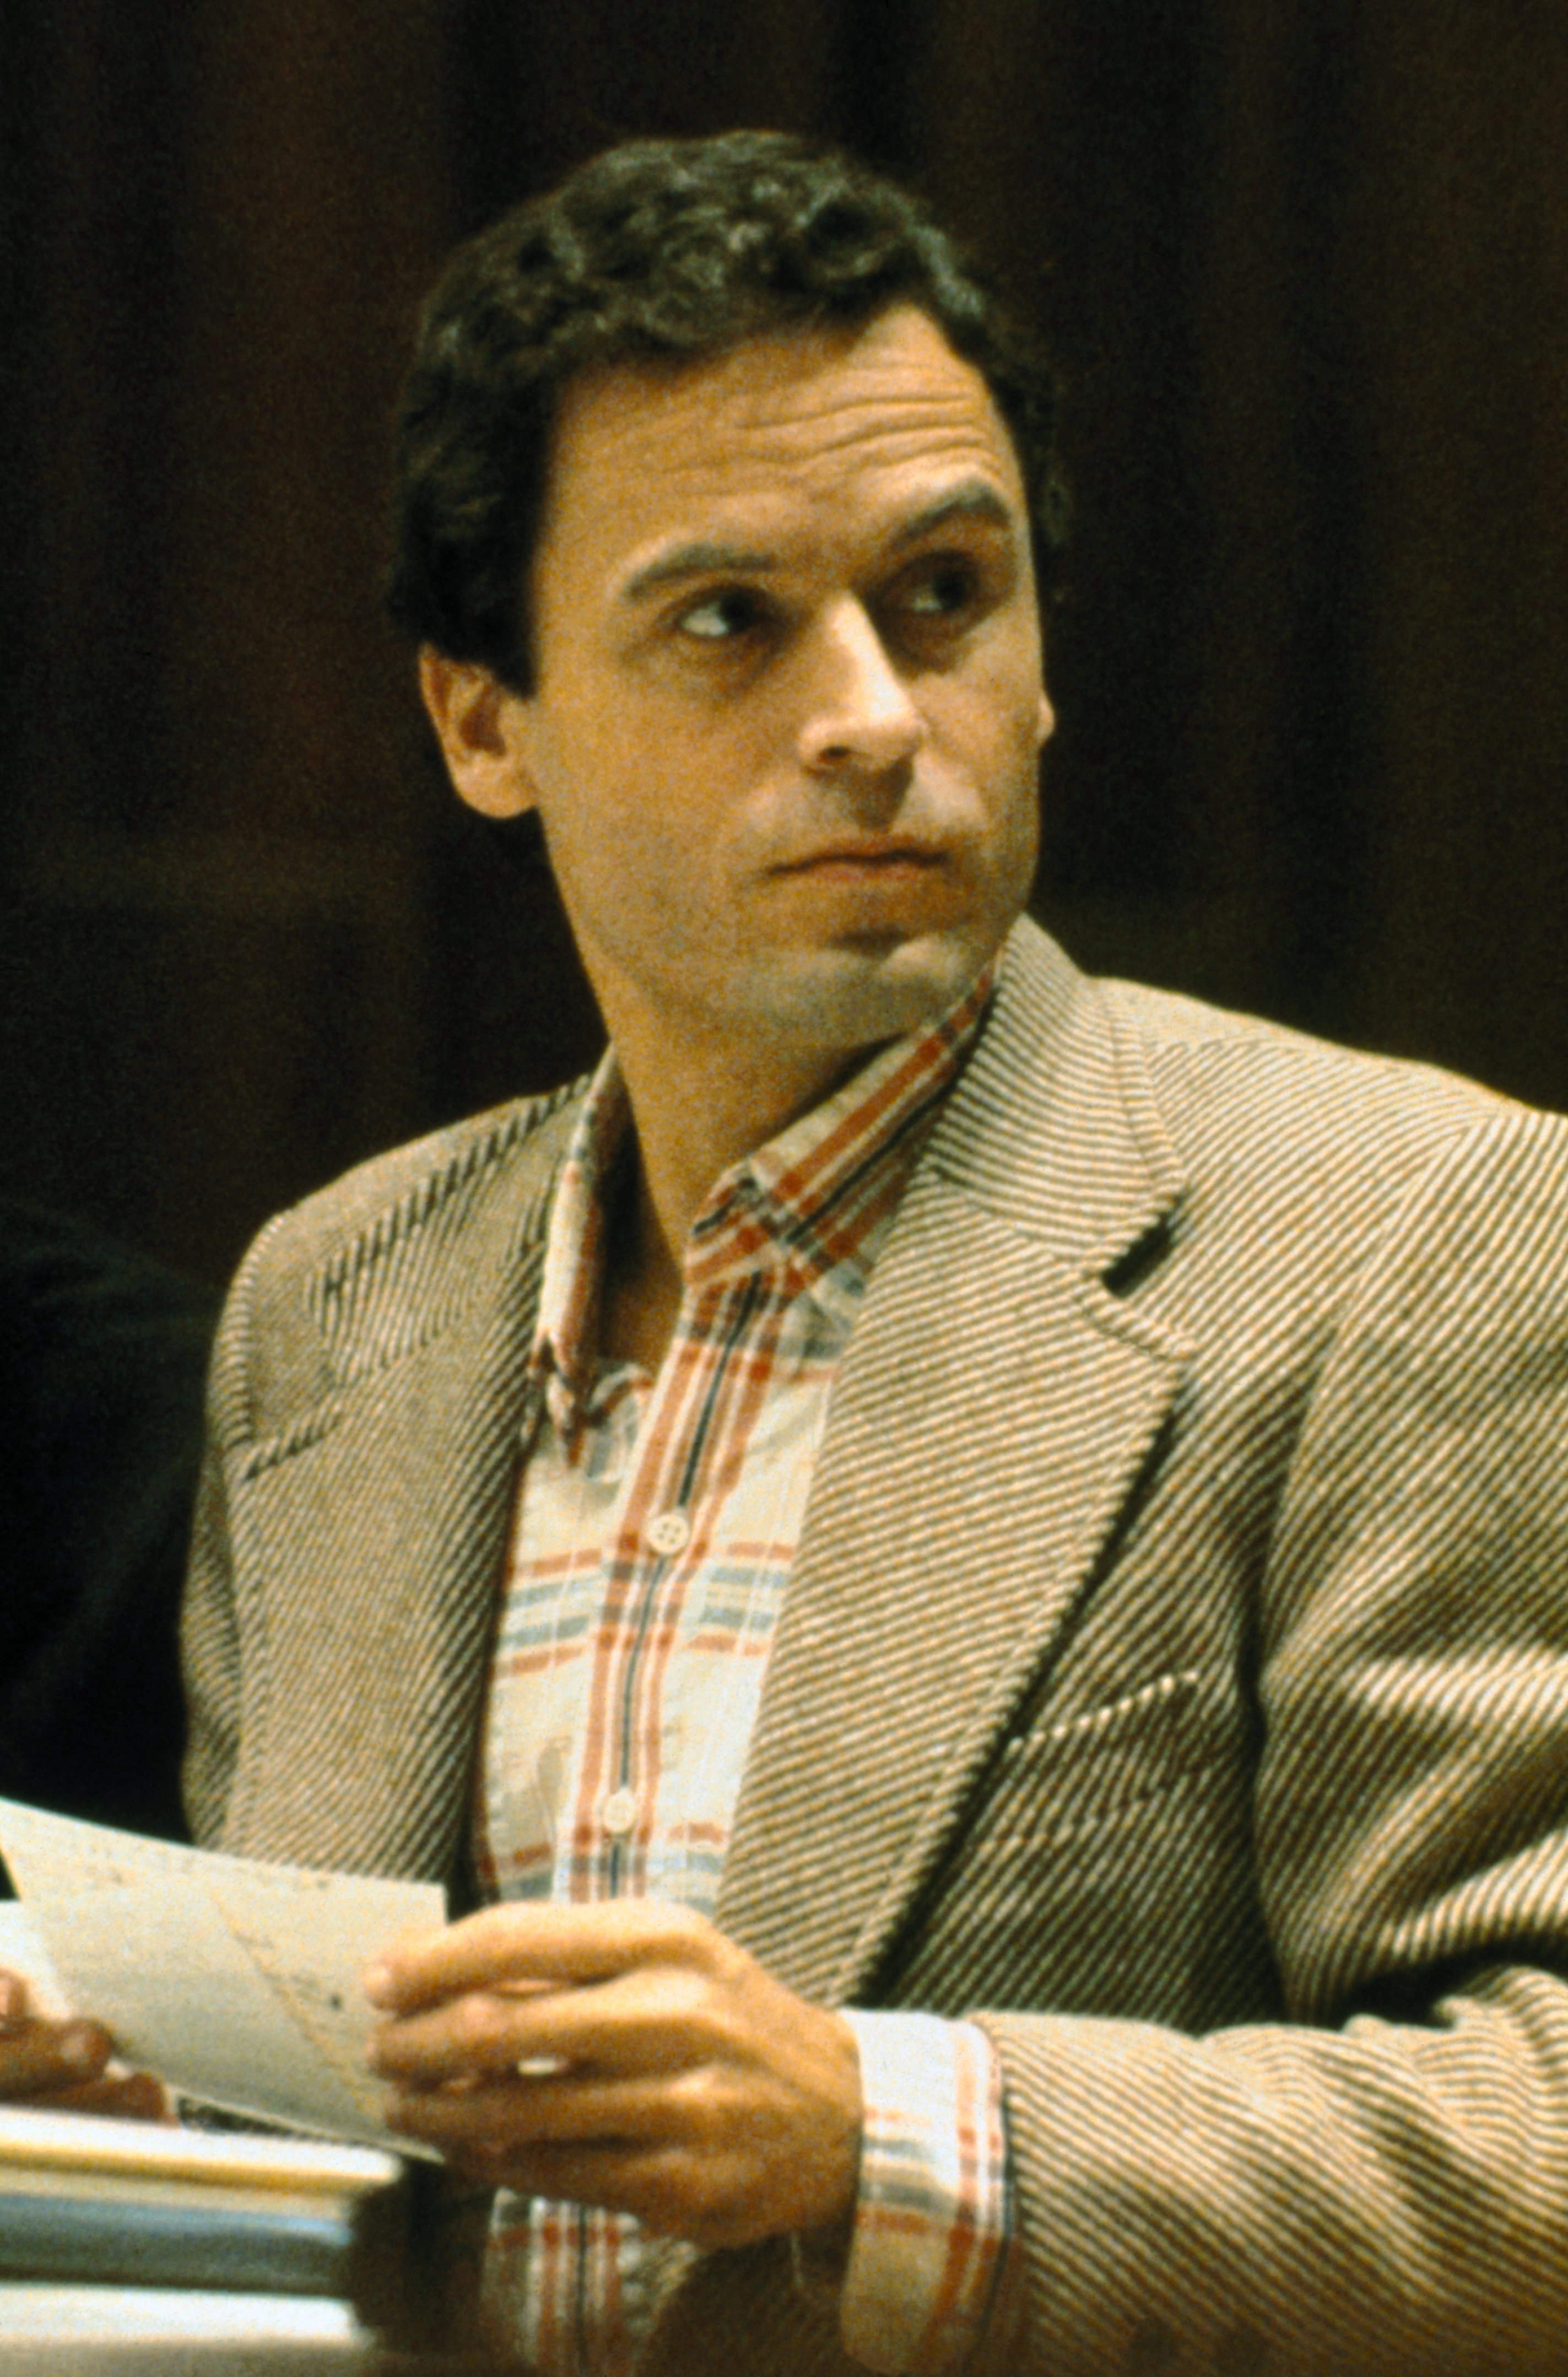 Close up of Theodore Bundy, convicted Florida murderer, charged with other killings.| Source: Getty Images